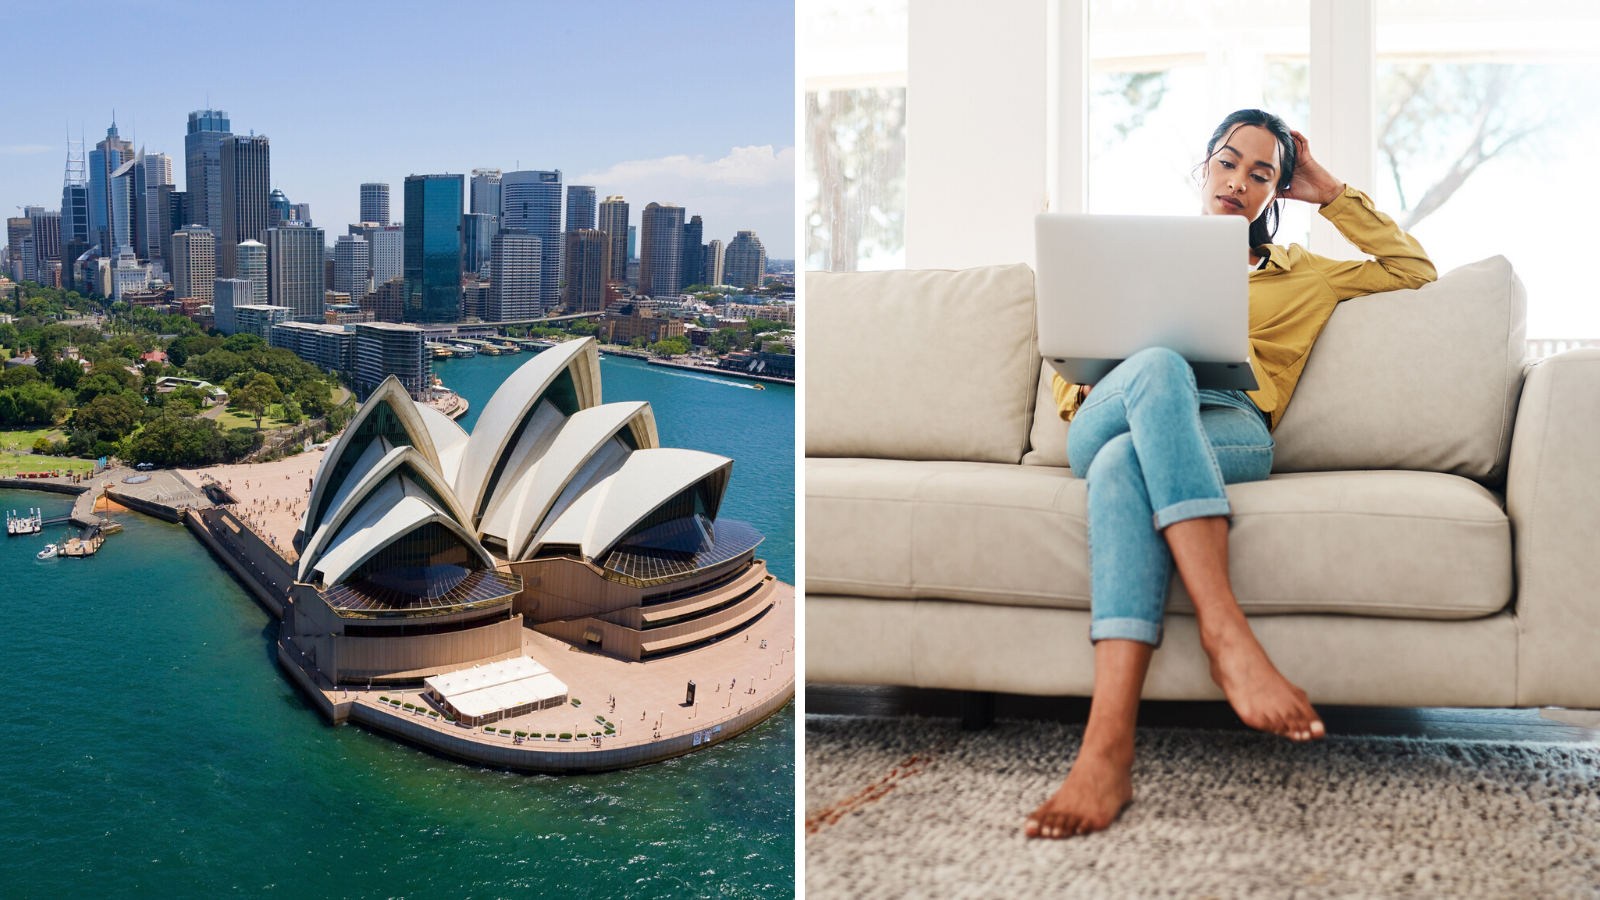 Working from home puts salaries in question